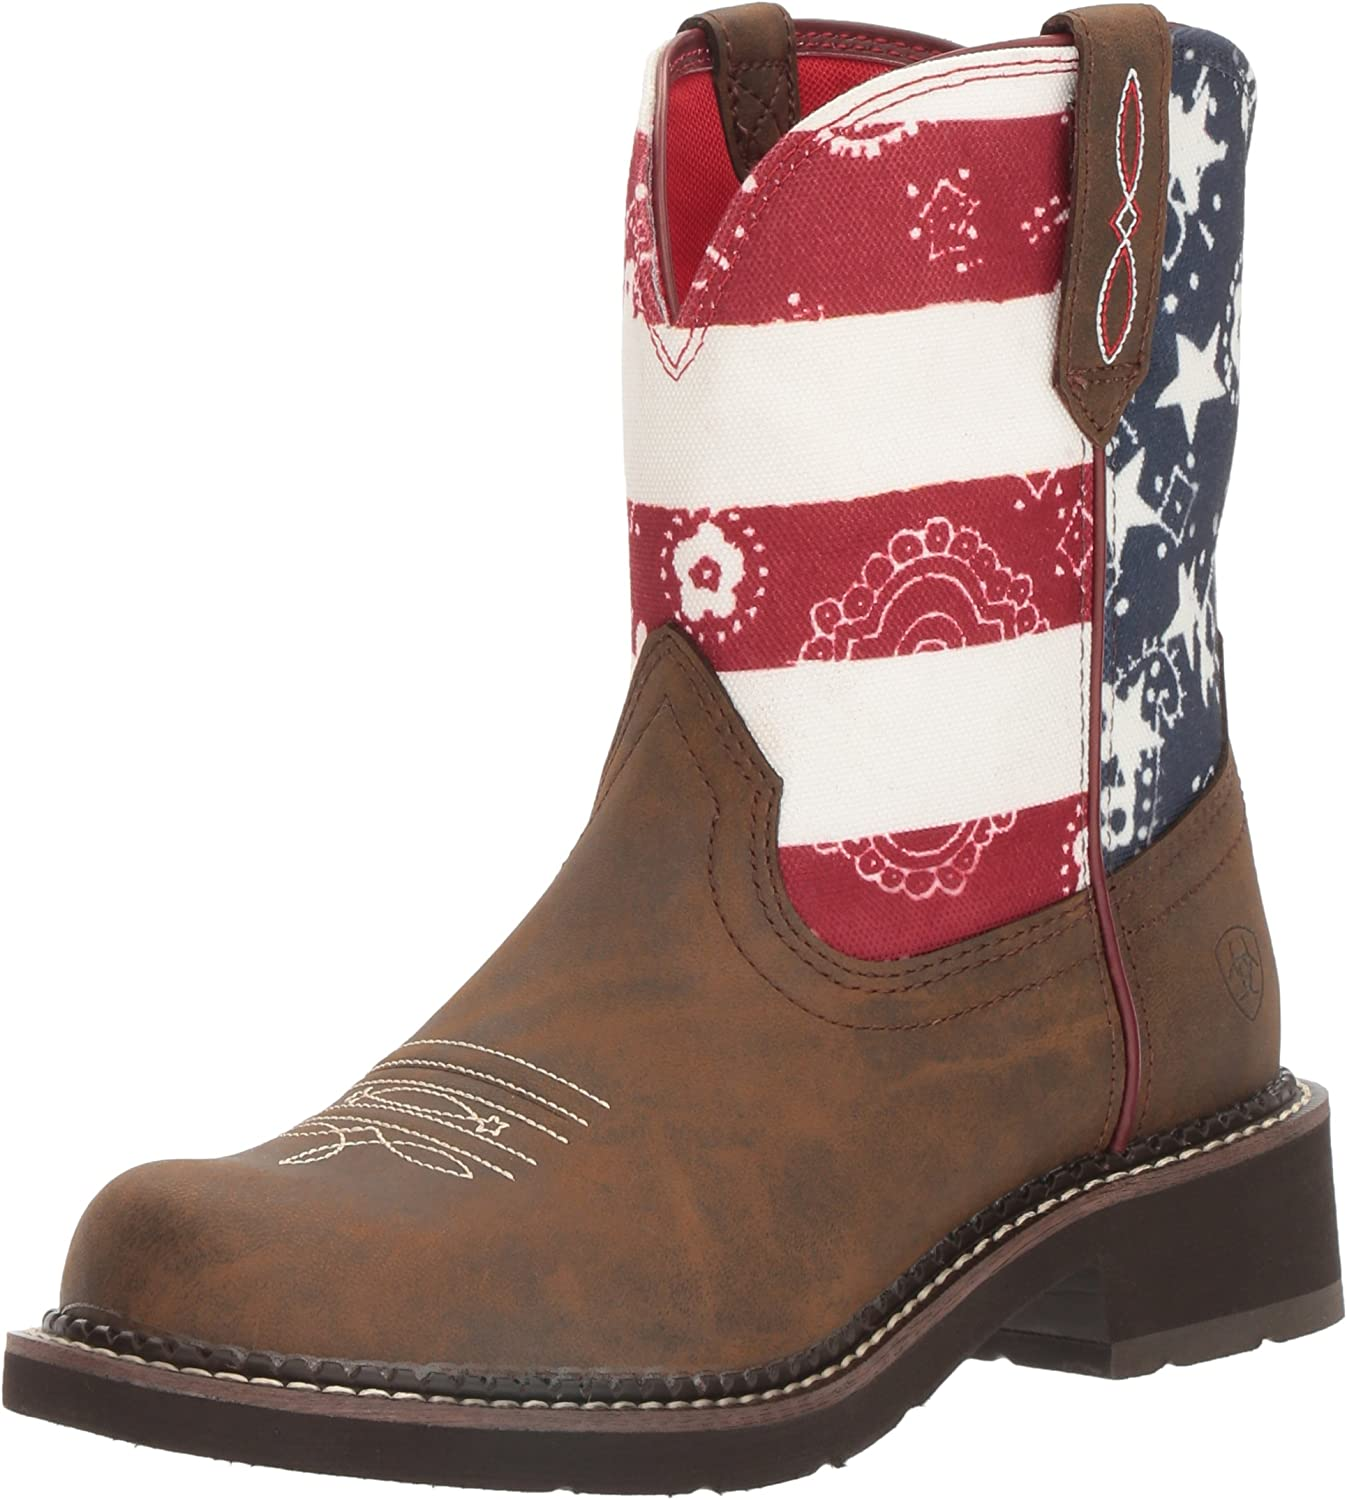 Ariat Women's Women's Fatbaby Heritage Western Cowboy Boot, Tooled Brown, 6 B US